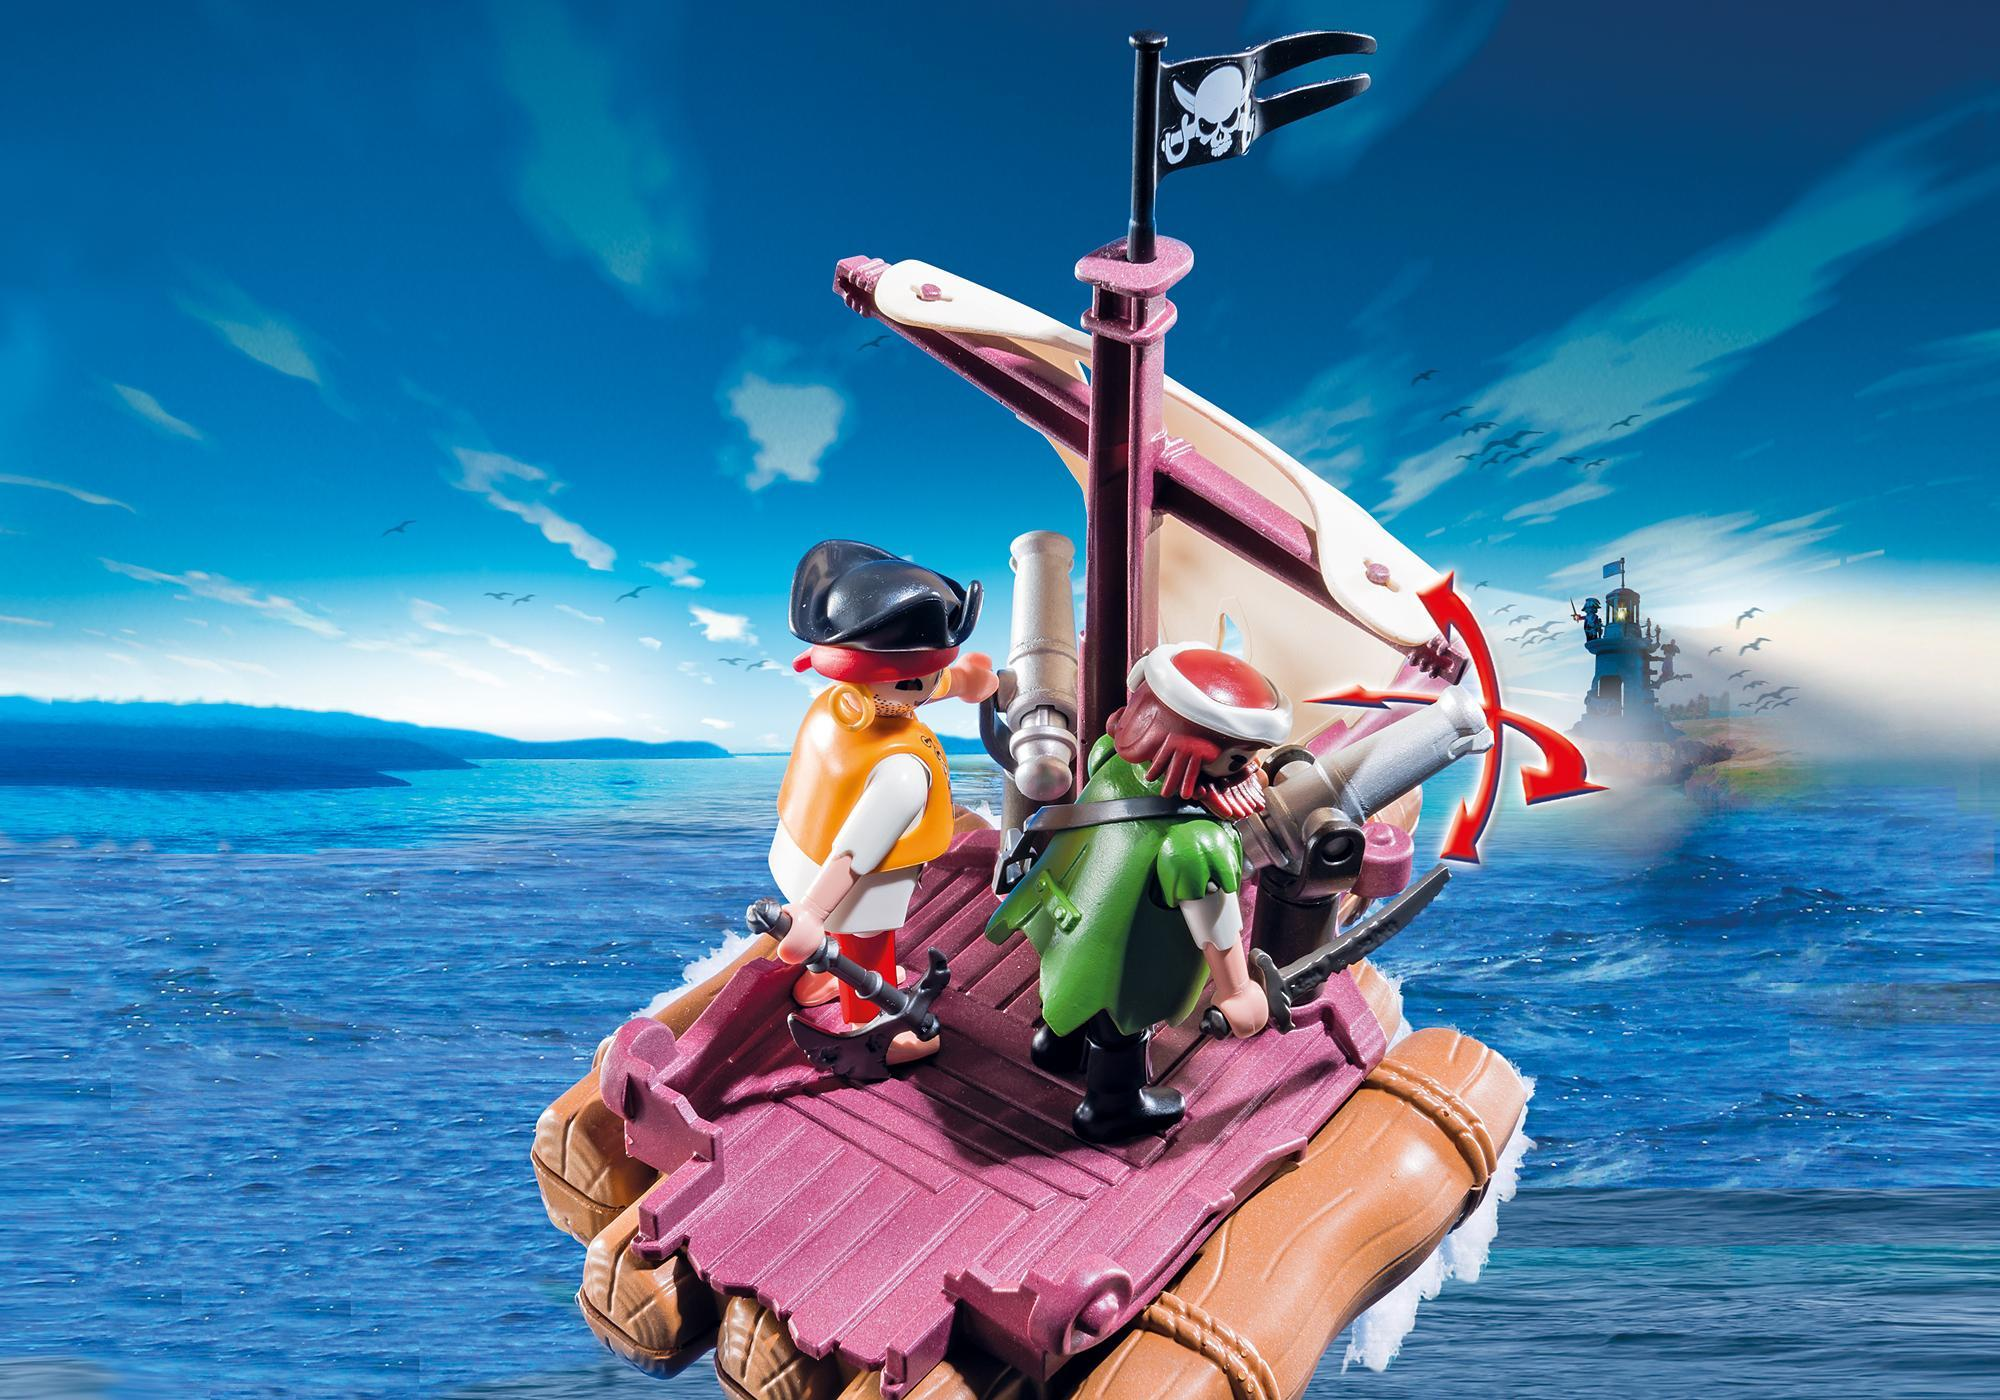 http://media.playmobil.com/i/playmobil/6682_product_extra1/Pirate Raft